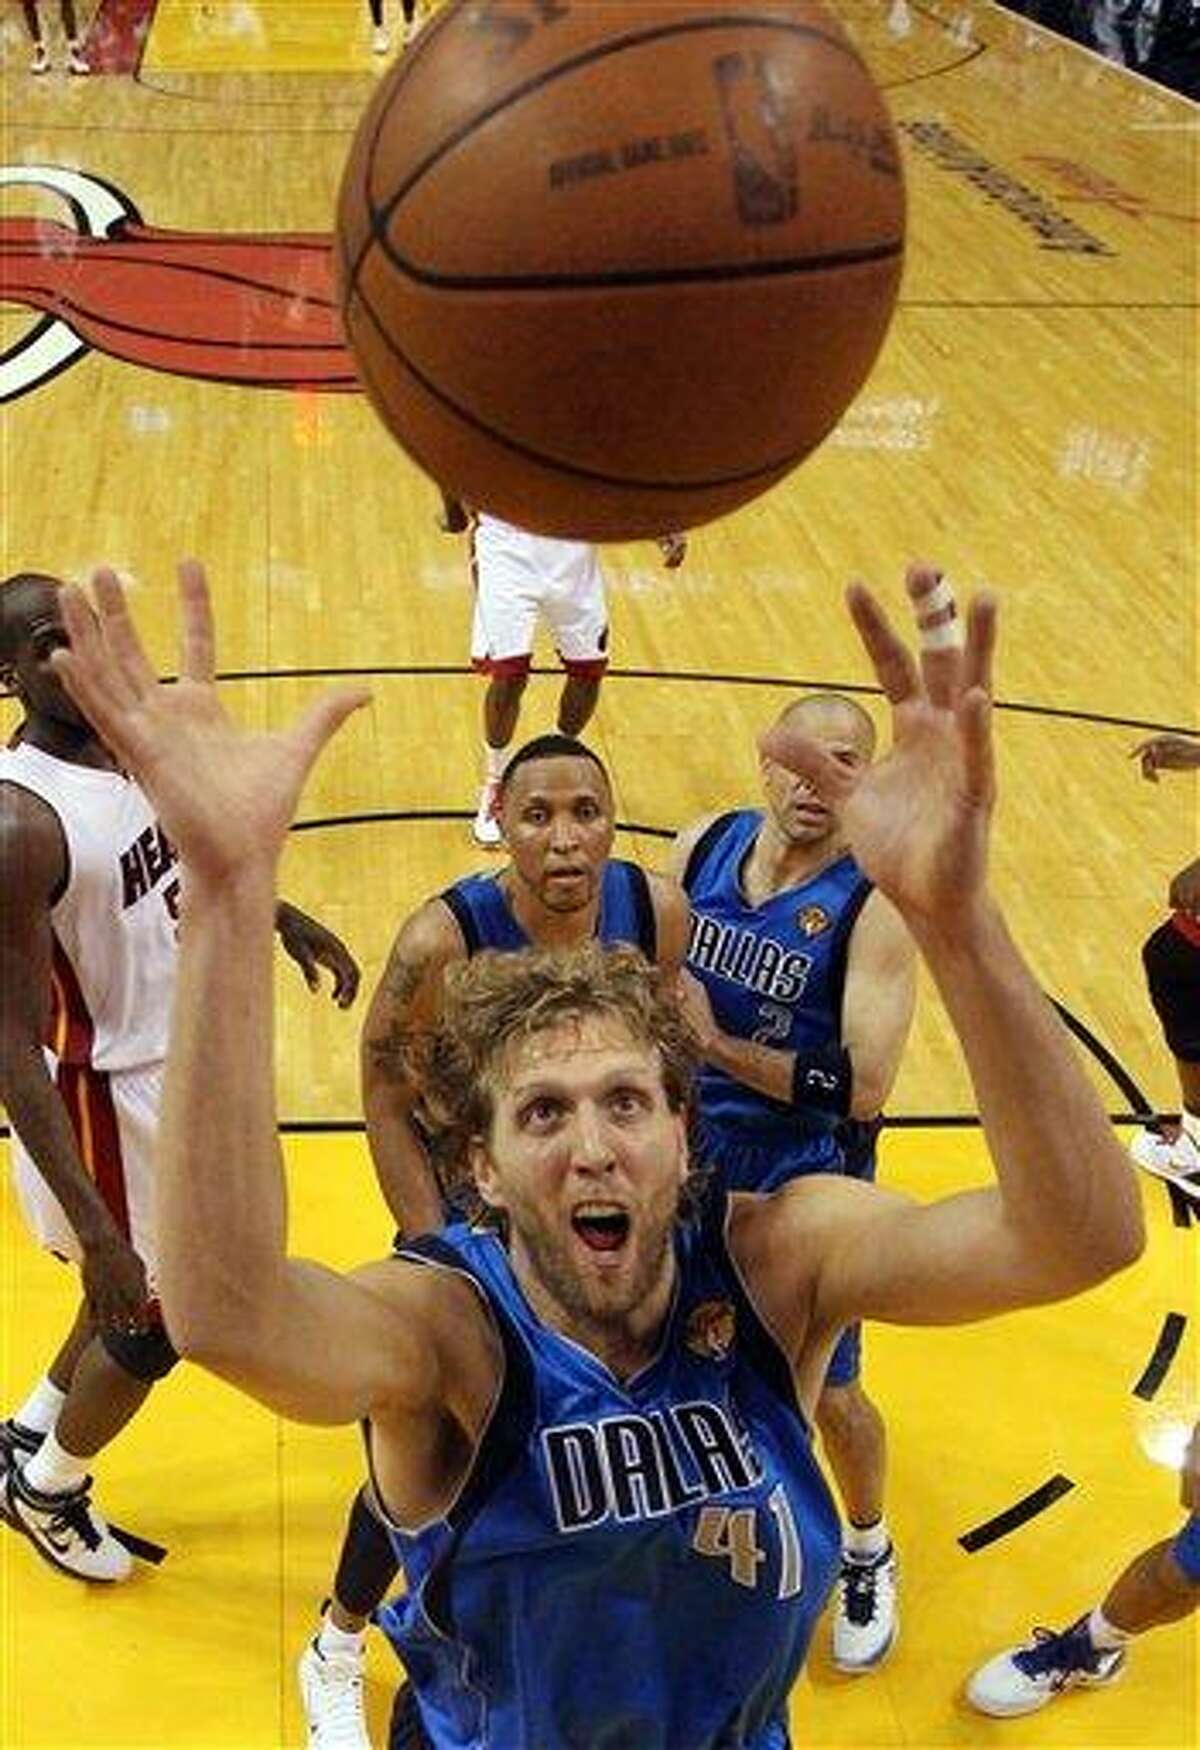 Dallas Mavericks' Dirk Nowitzki goes up for a rebound during the second half of Game 6 of the NBA Finals basketball game against the Miami Heat Sunday in Miami. (AP Photo/Ronald Martinez; Pool)